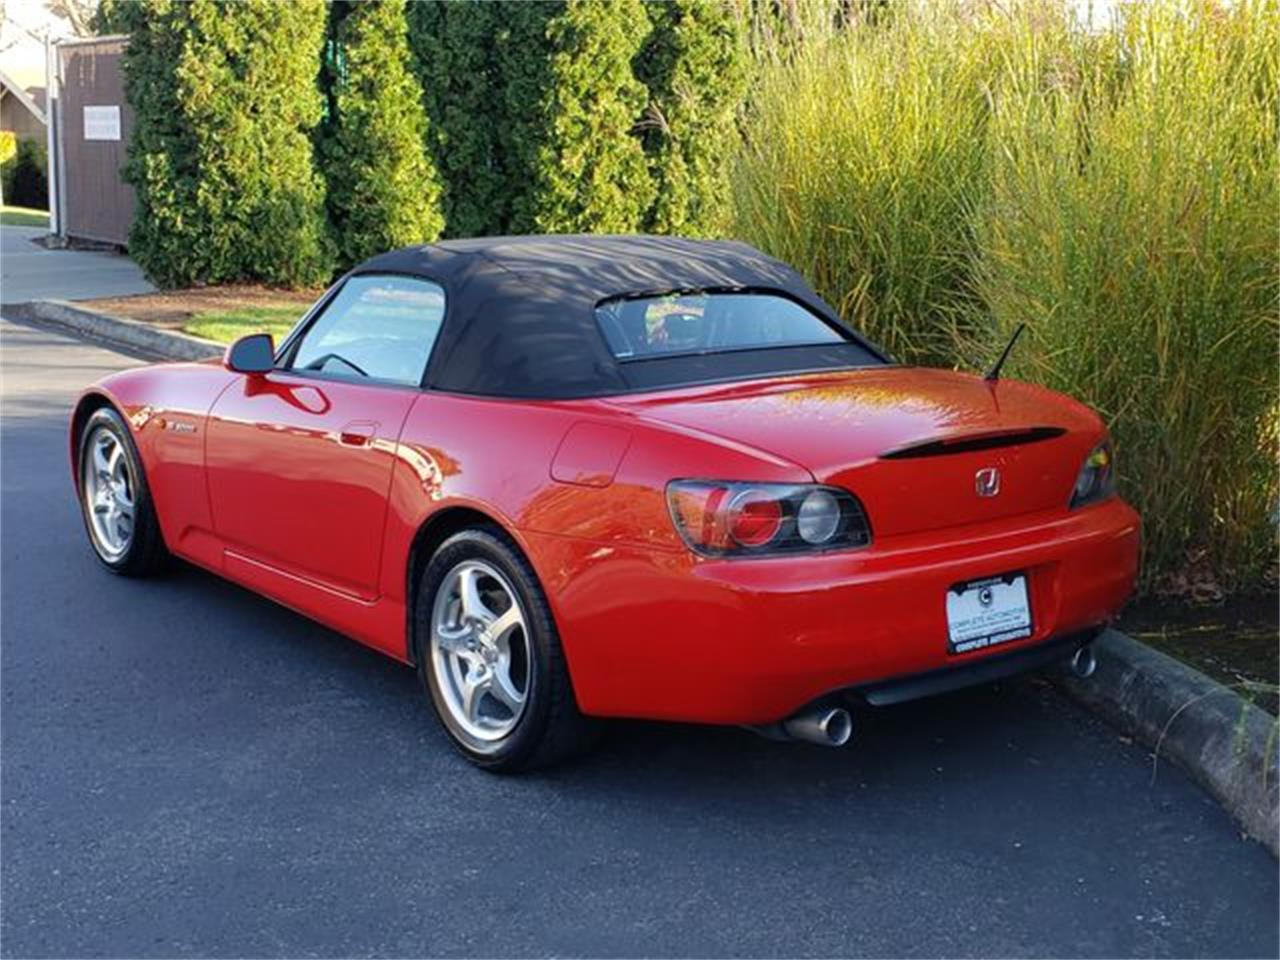 2002 Honda S2000 (CC-1274377) for sale in Seattle, Washington